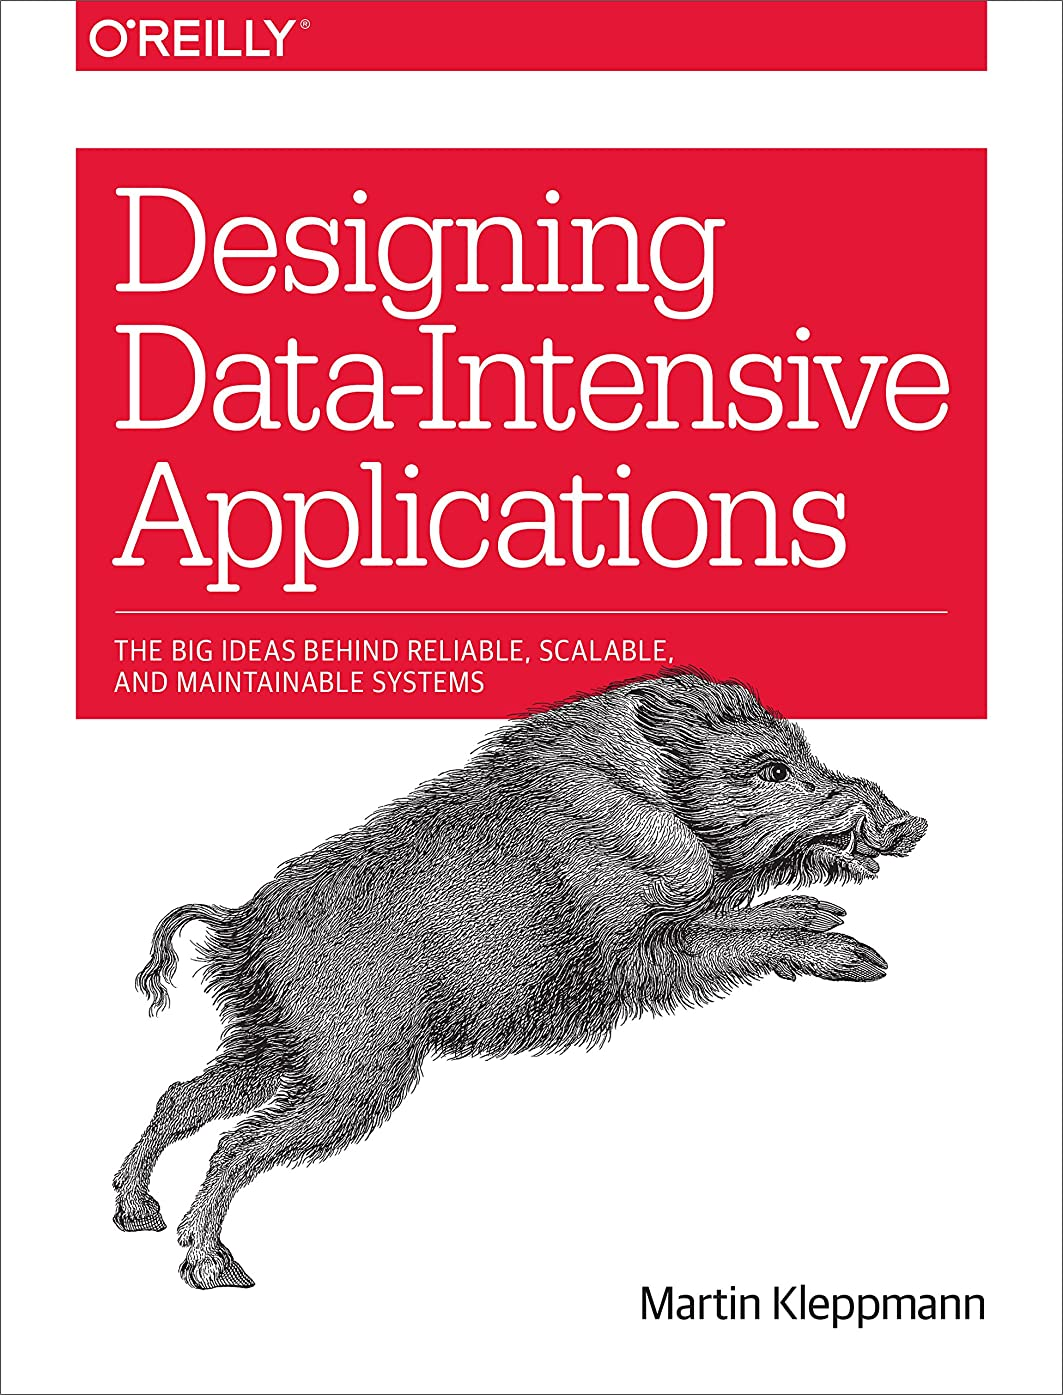 ワックス充電リスキーなDesigning Data-Intensive Applications: The Big Ideas Behind Reliable, Scalable, and Maintainable Systems (English Edition)